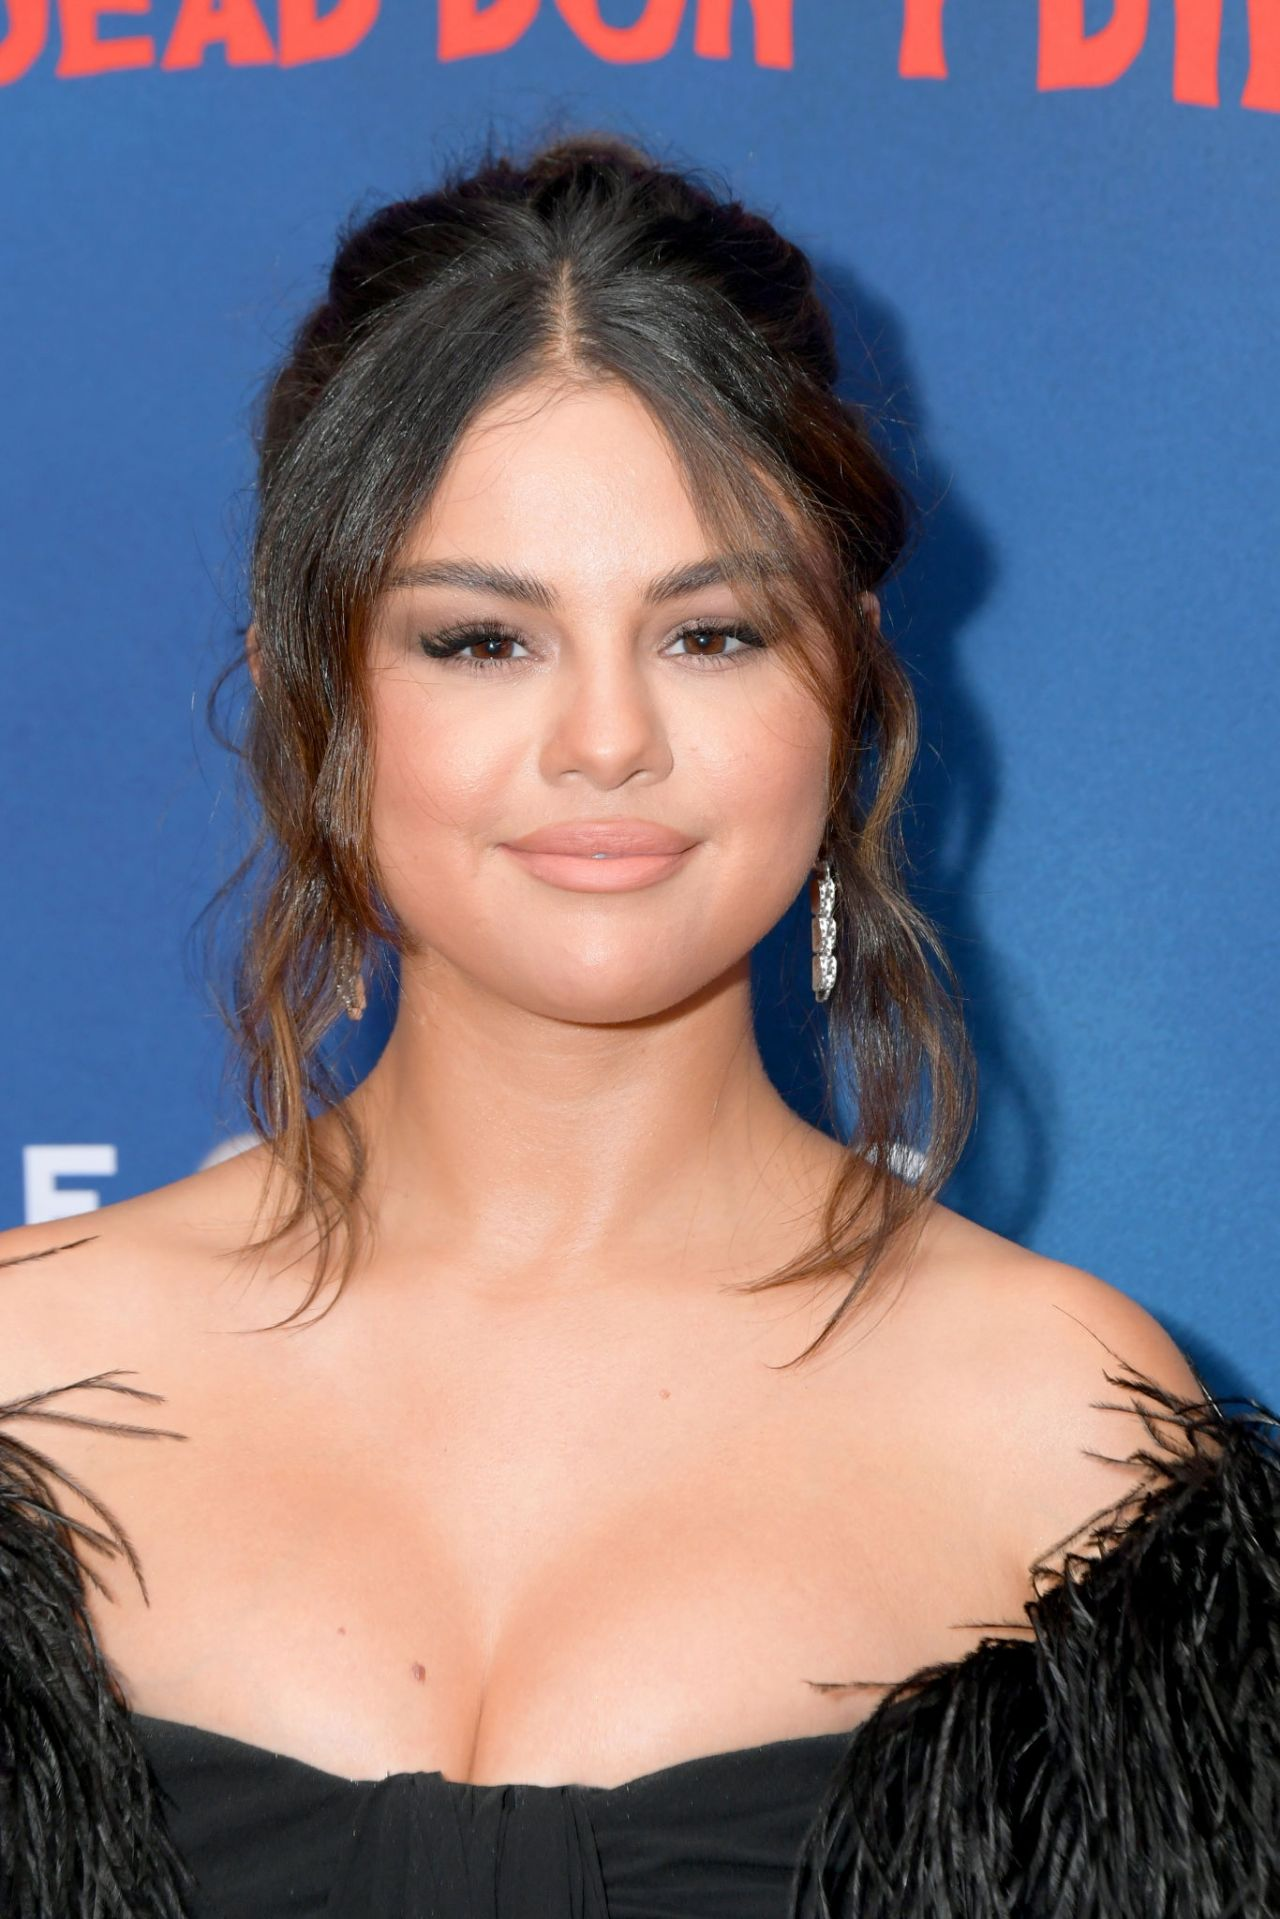 Thicc Selena Gomez Fucking Stunning, Sexy And Gorgeous At -1216